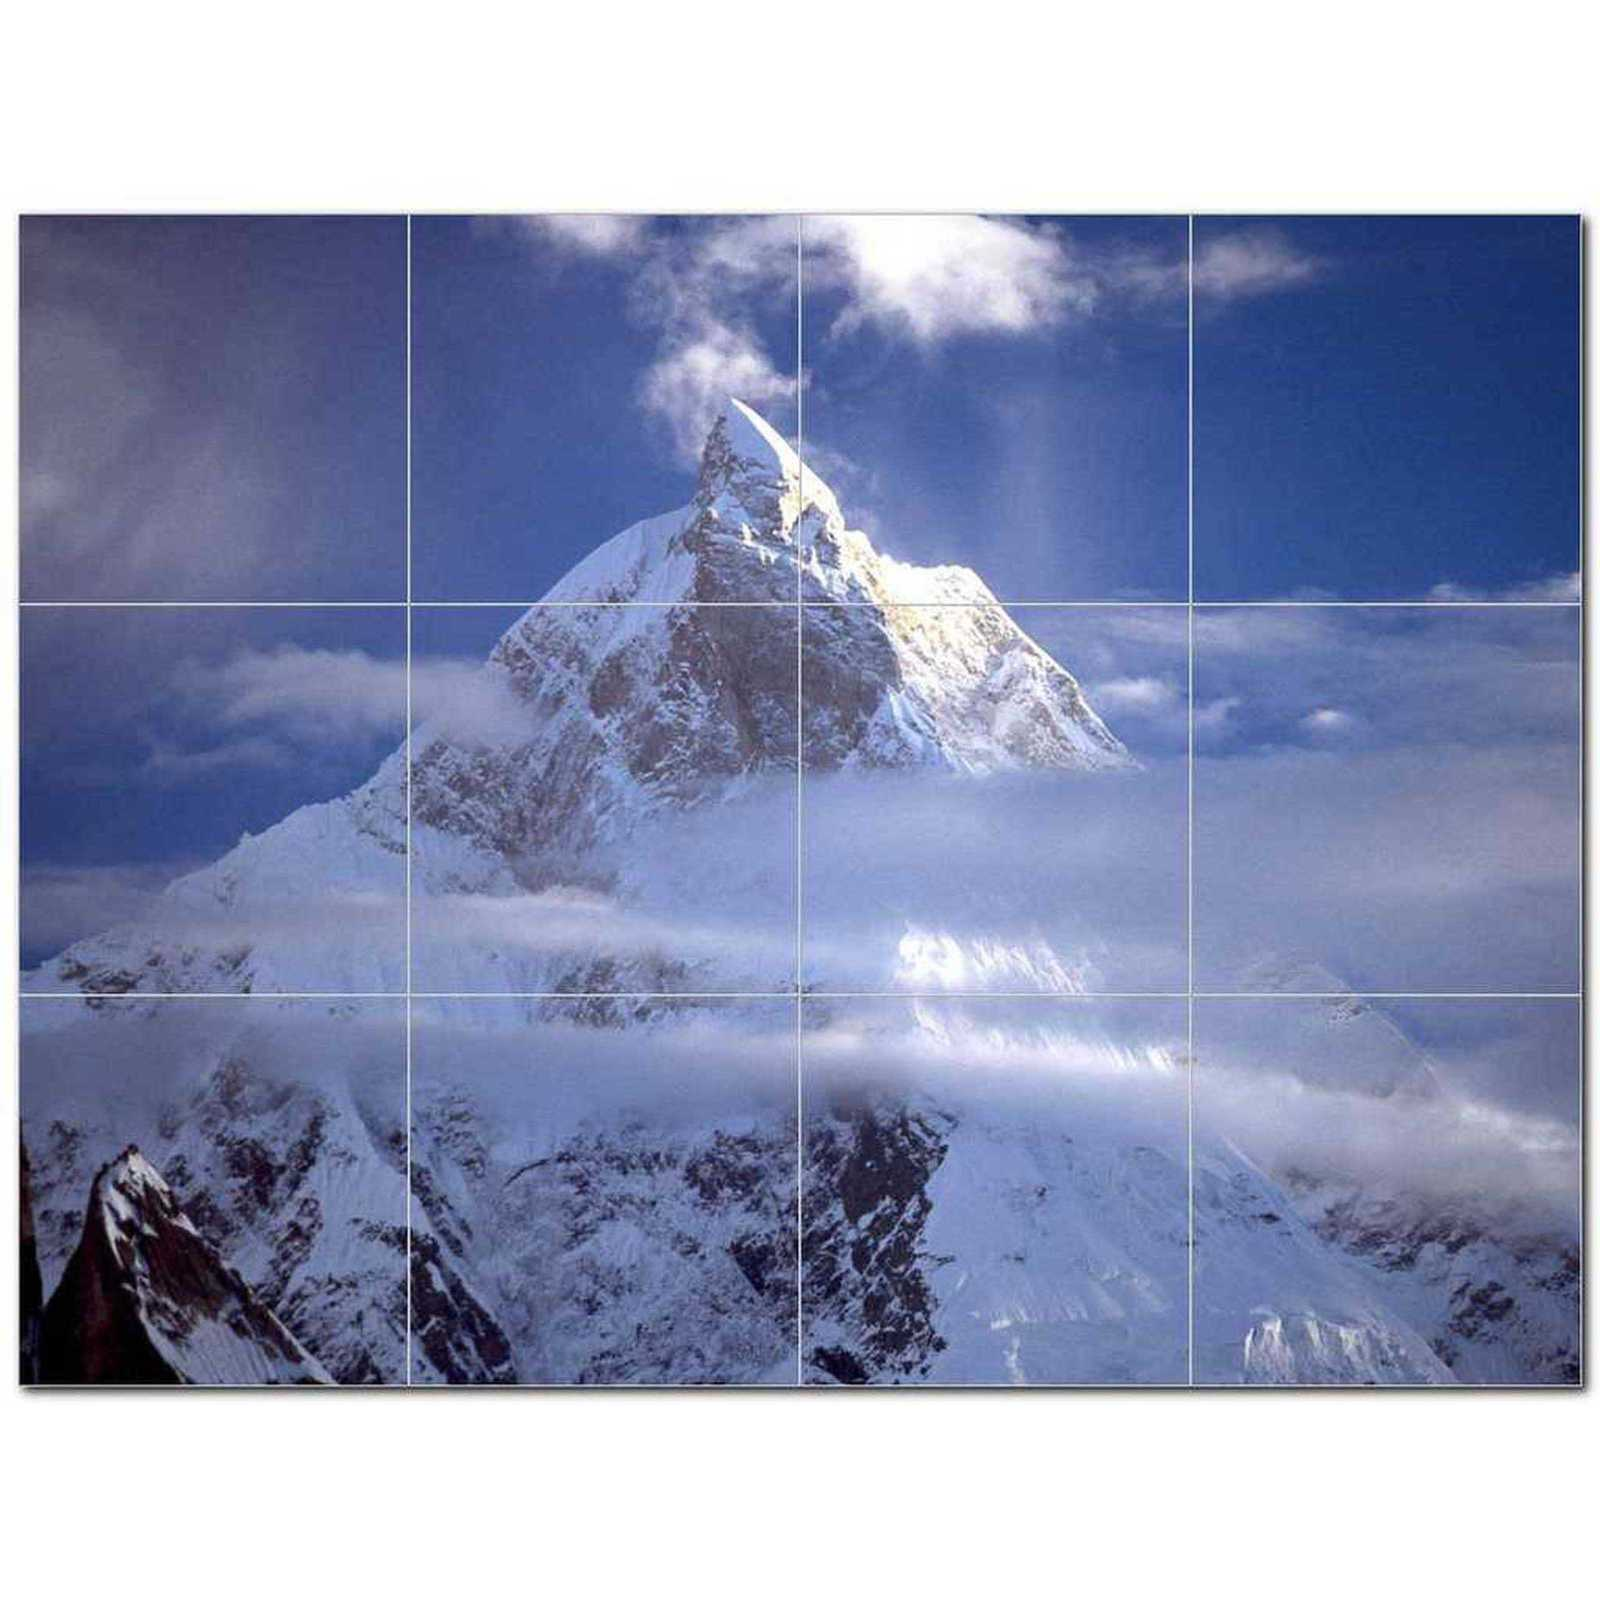 Primary image for Mountain Photo Ceramic Tile Mural Kitchen Backsplash Bathroom Shower BAZ405537